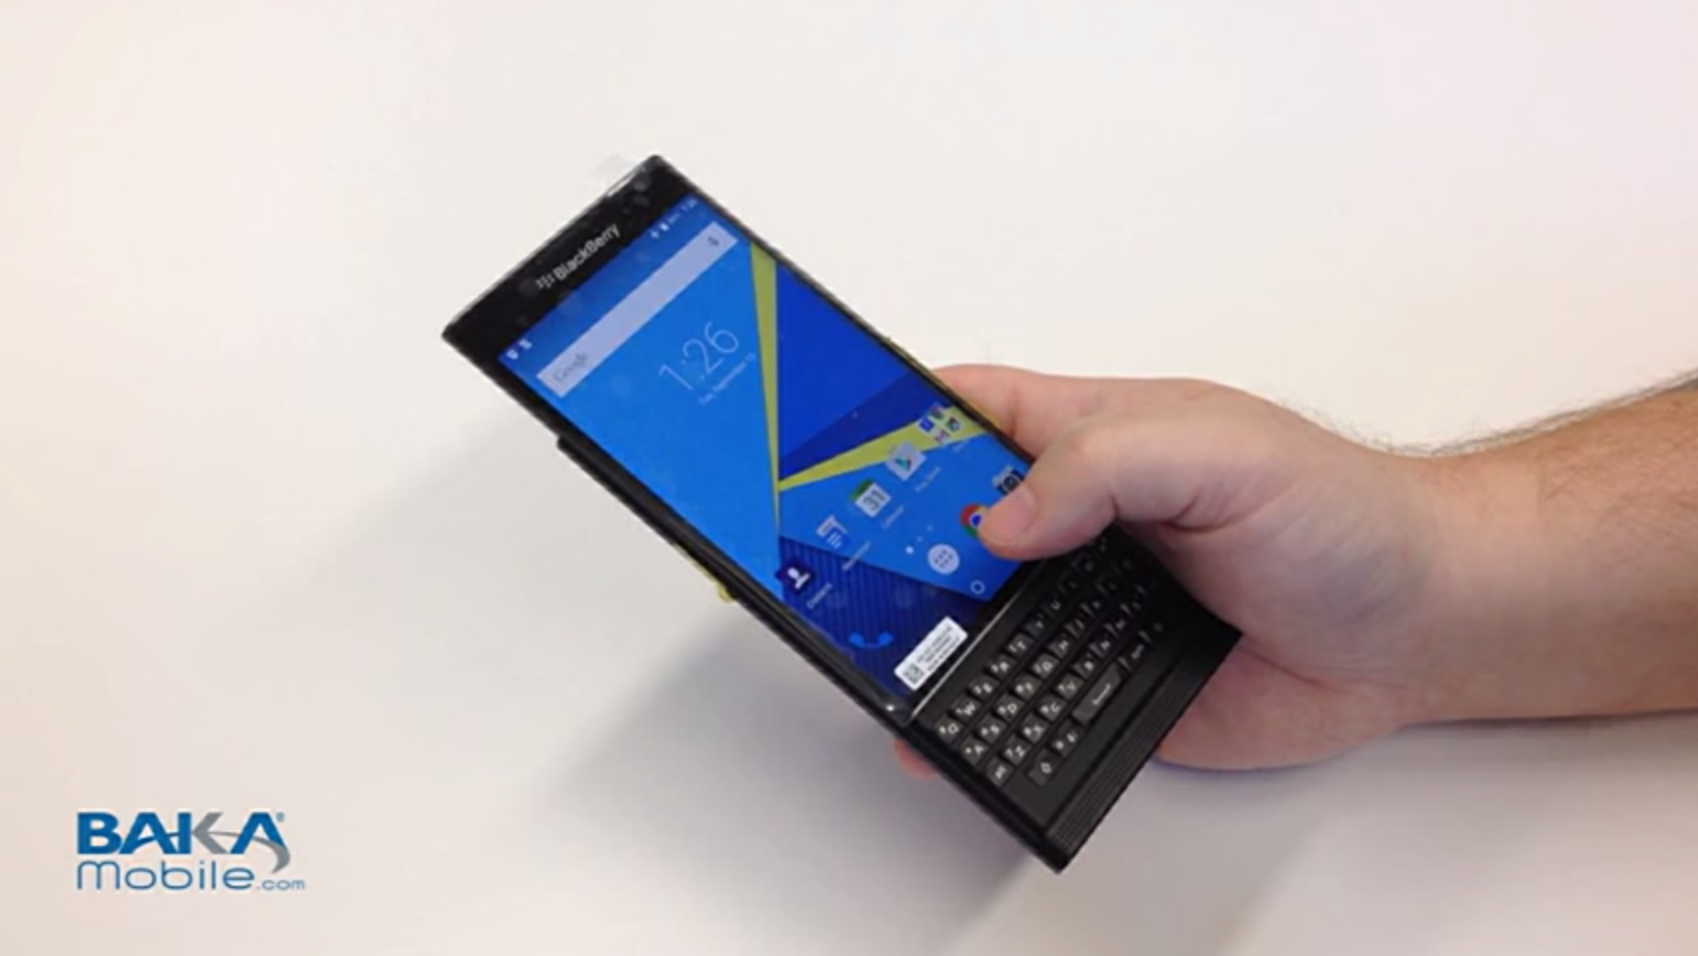 BlackBerry's Android phone is shaping up nicely in first leaked hands-on video